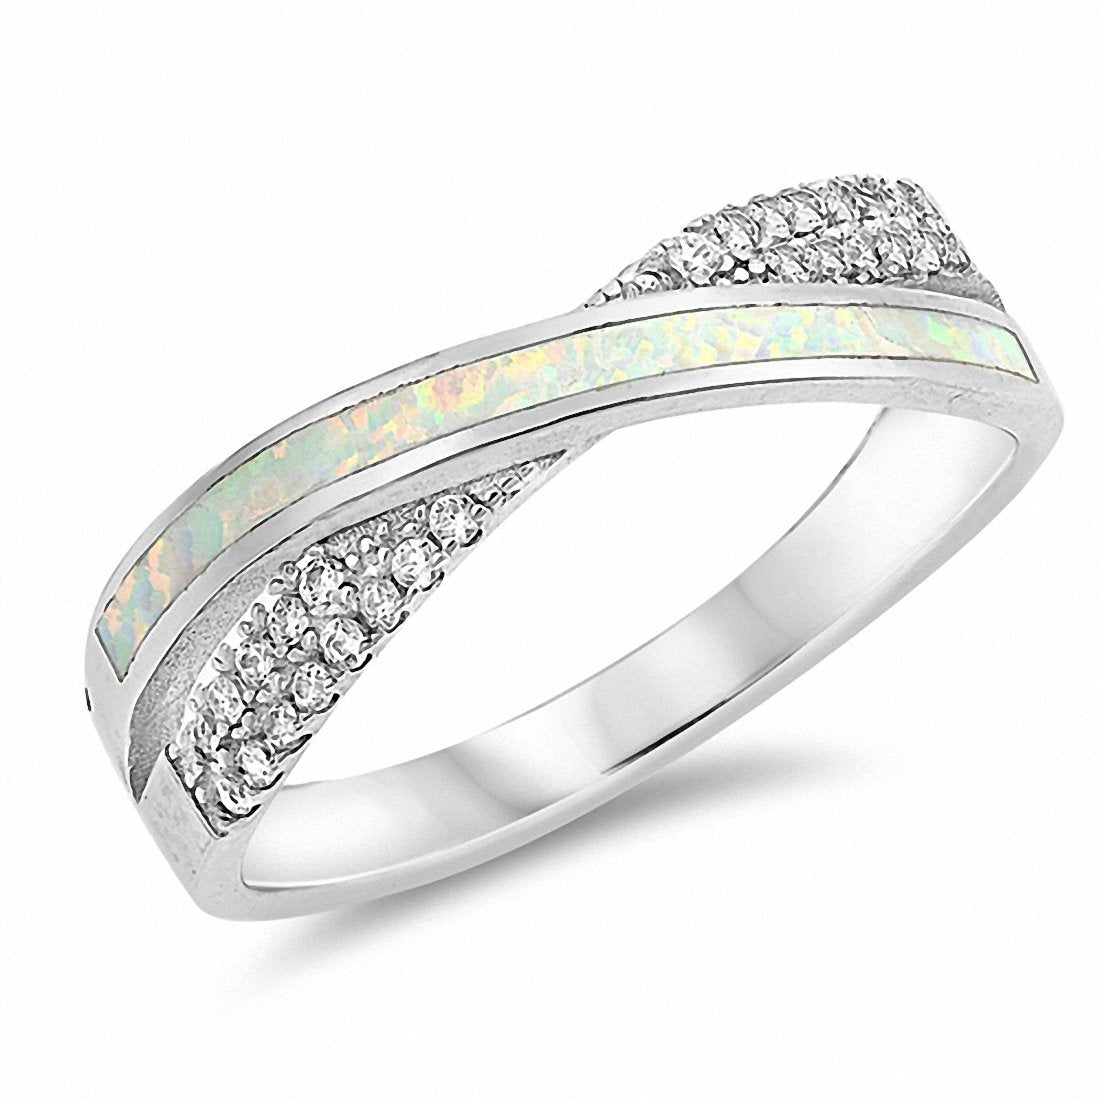 Crisscross Infinity Ring Created Opal Round Cubic Zirconia 925 Sterling Silver Choose Color